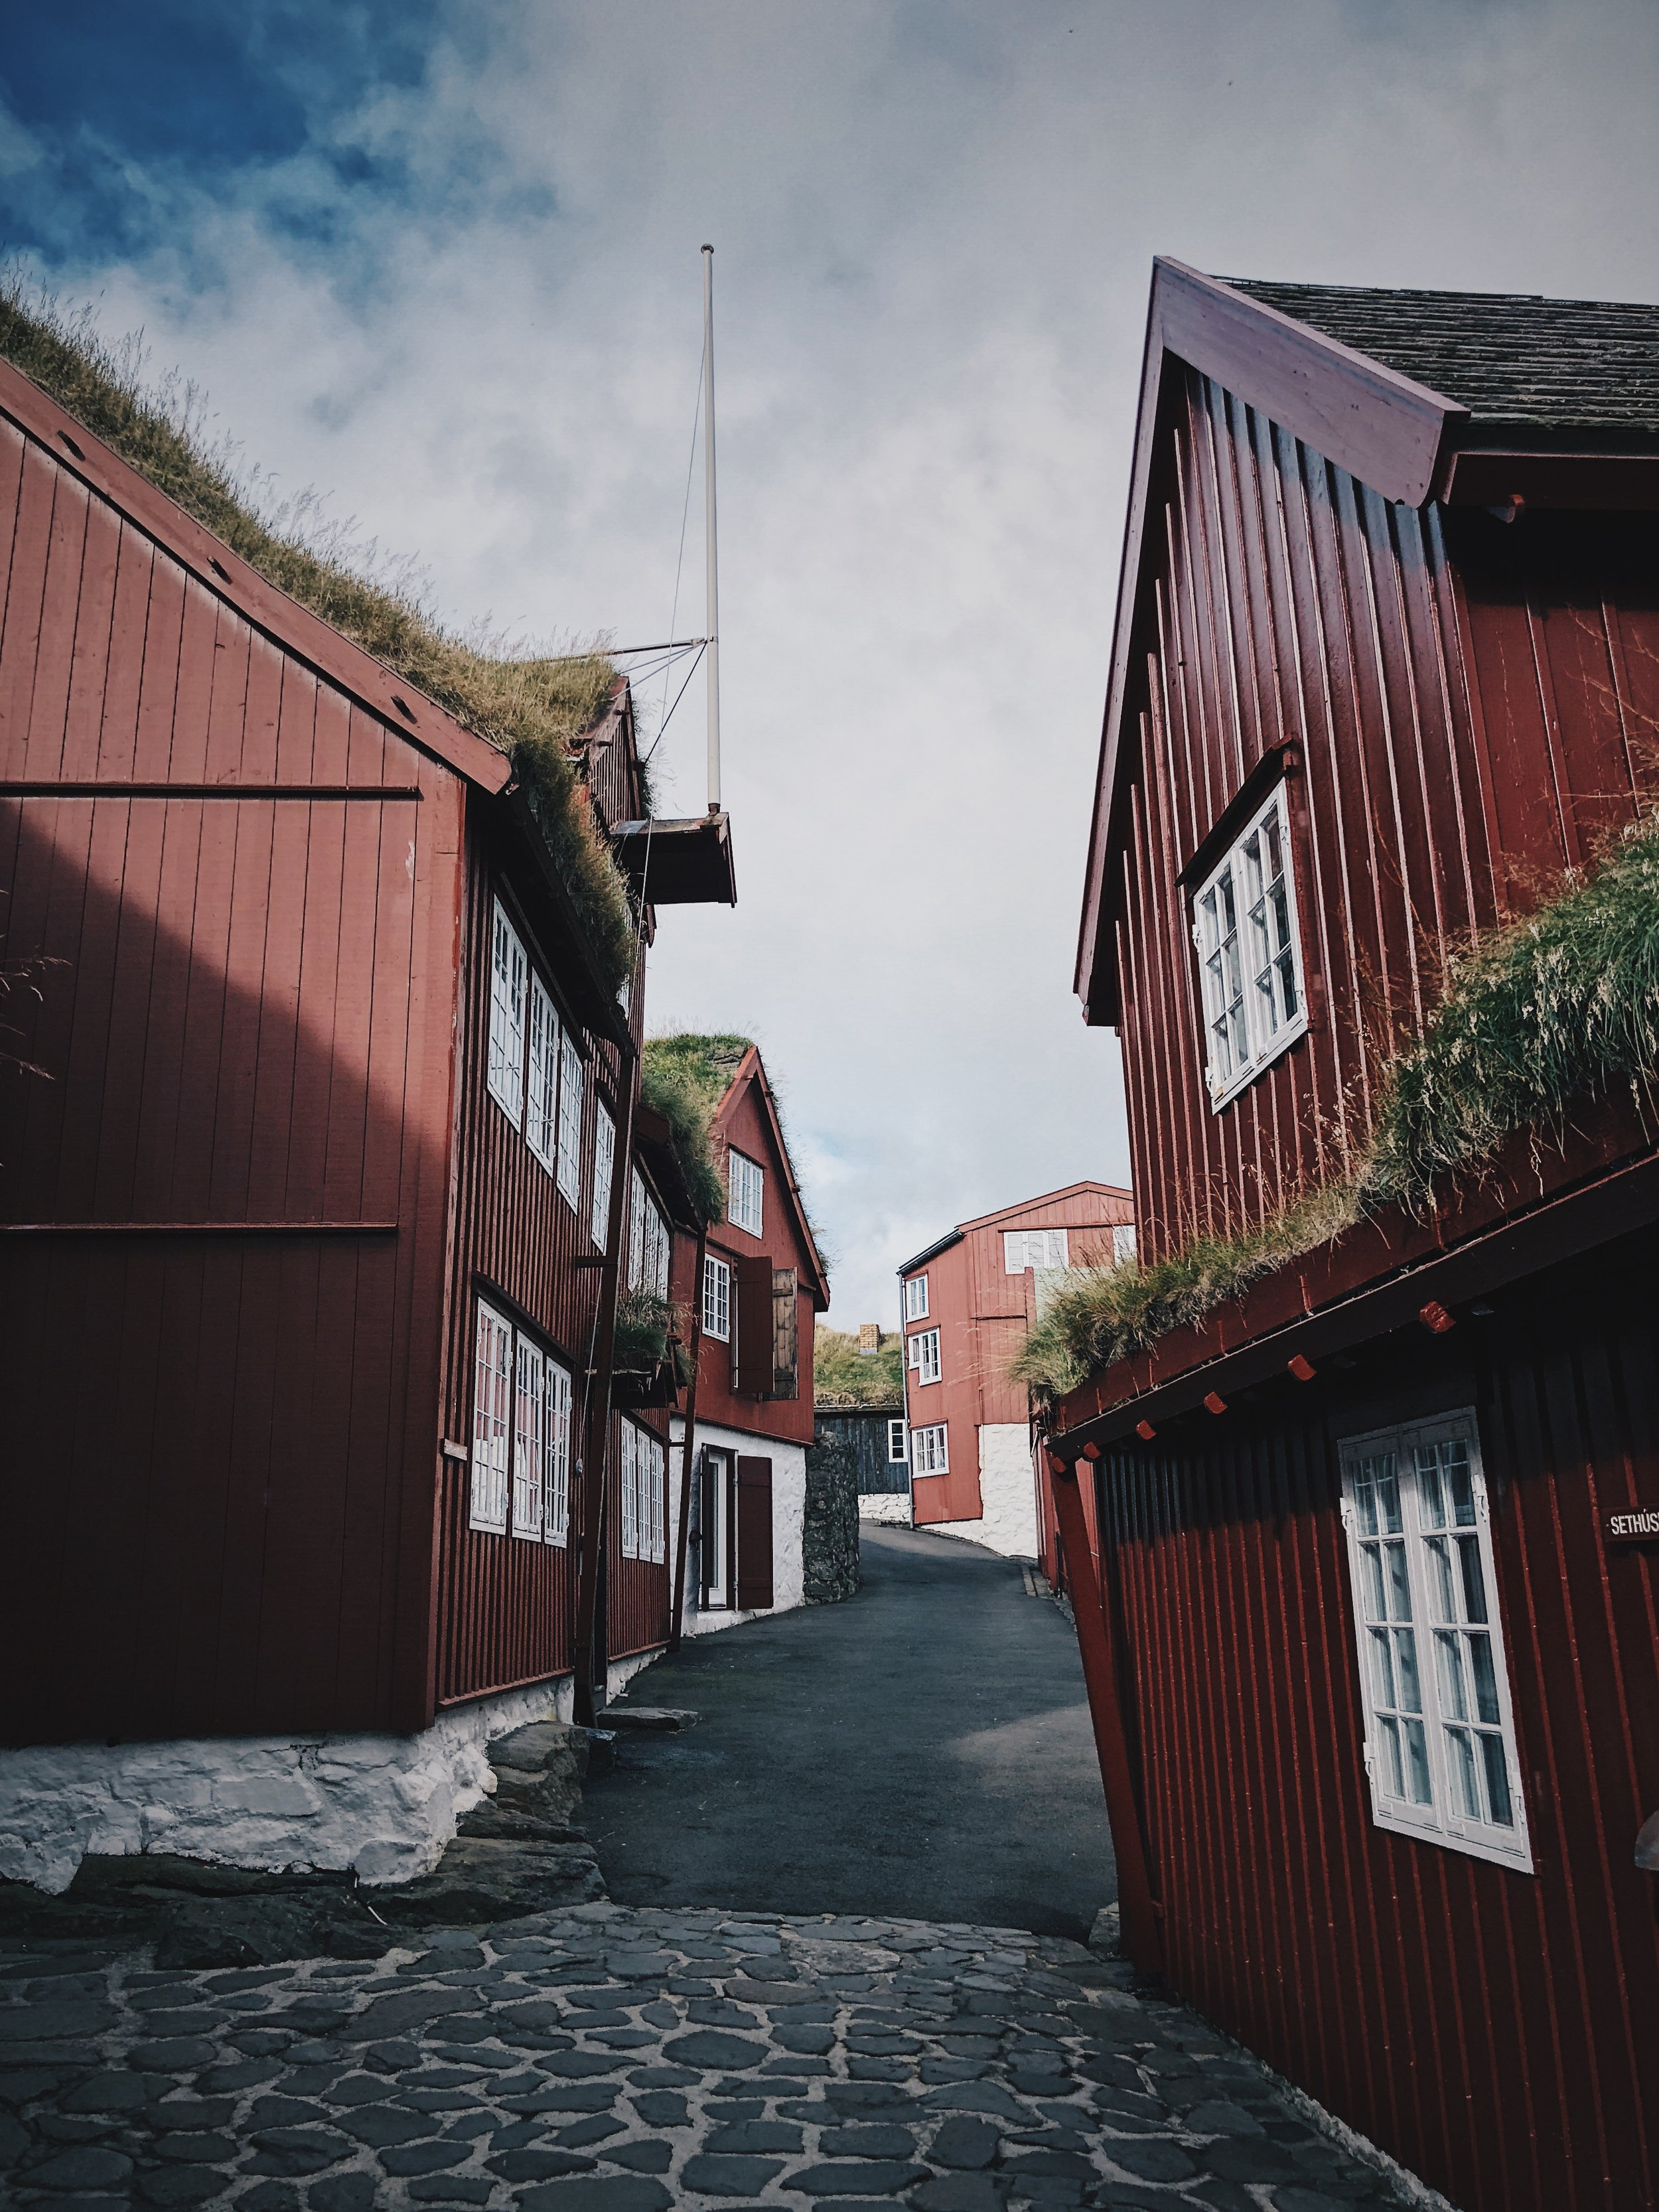 Tinganes, the old and very cozy area of Tórshavn. Tinganes is the historic location of the Faroese landsstýri (government)